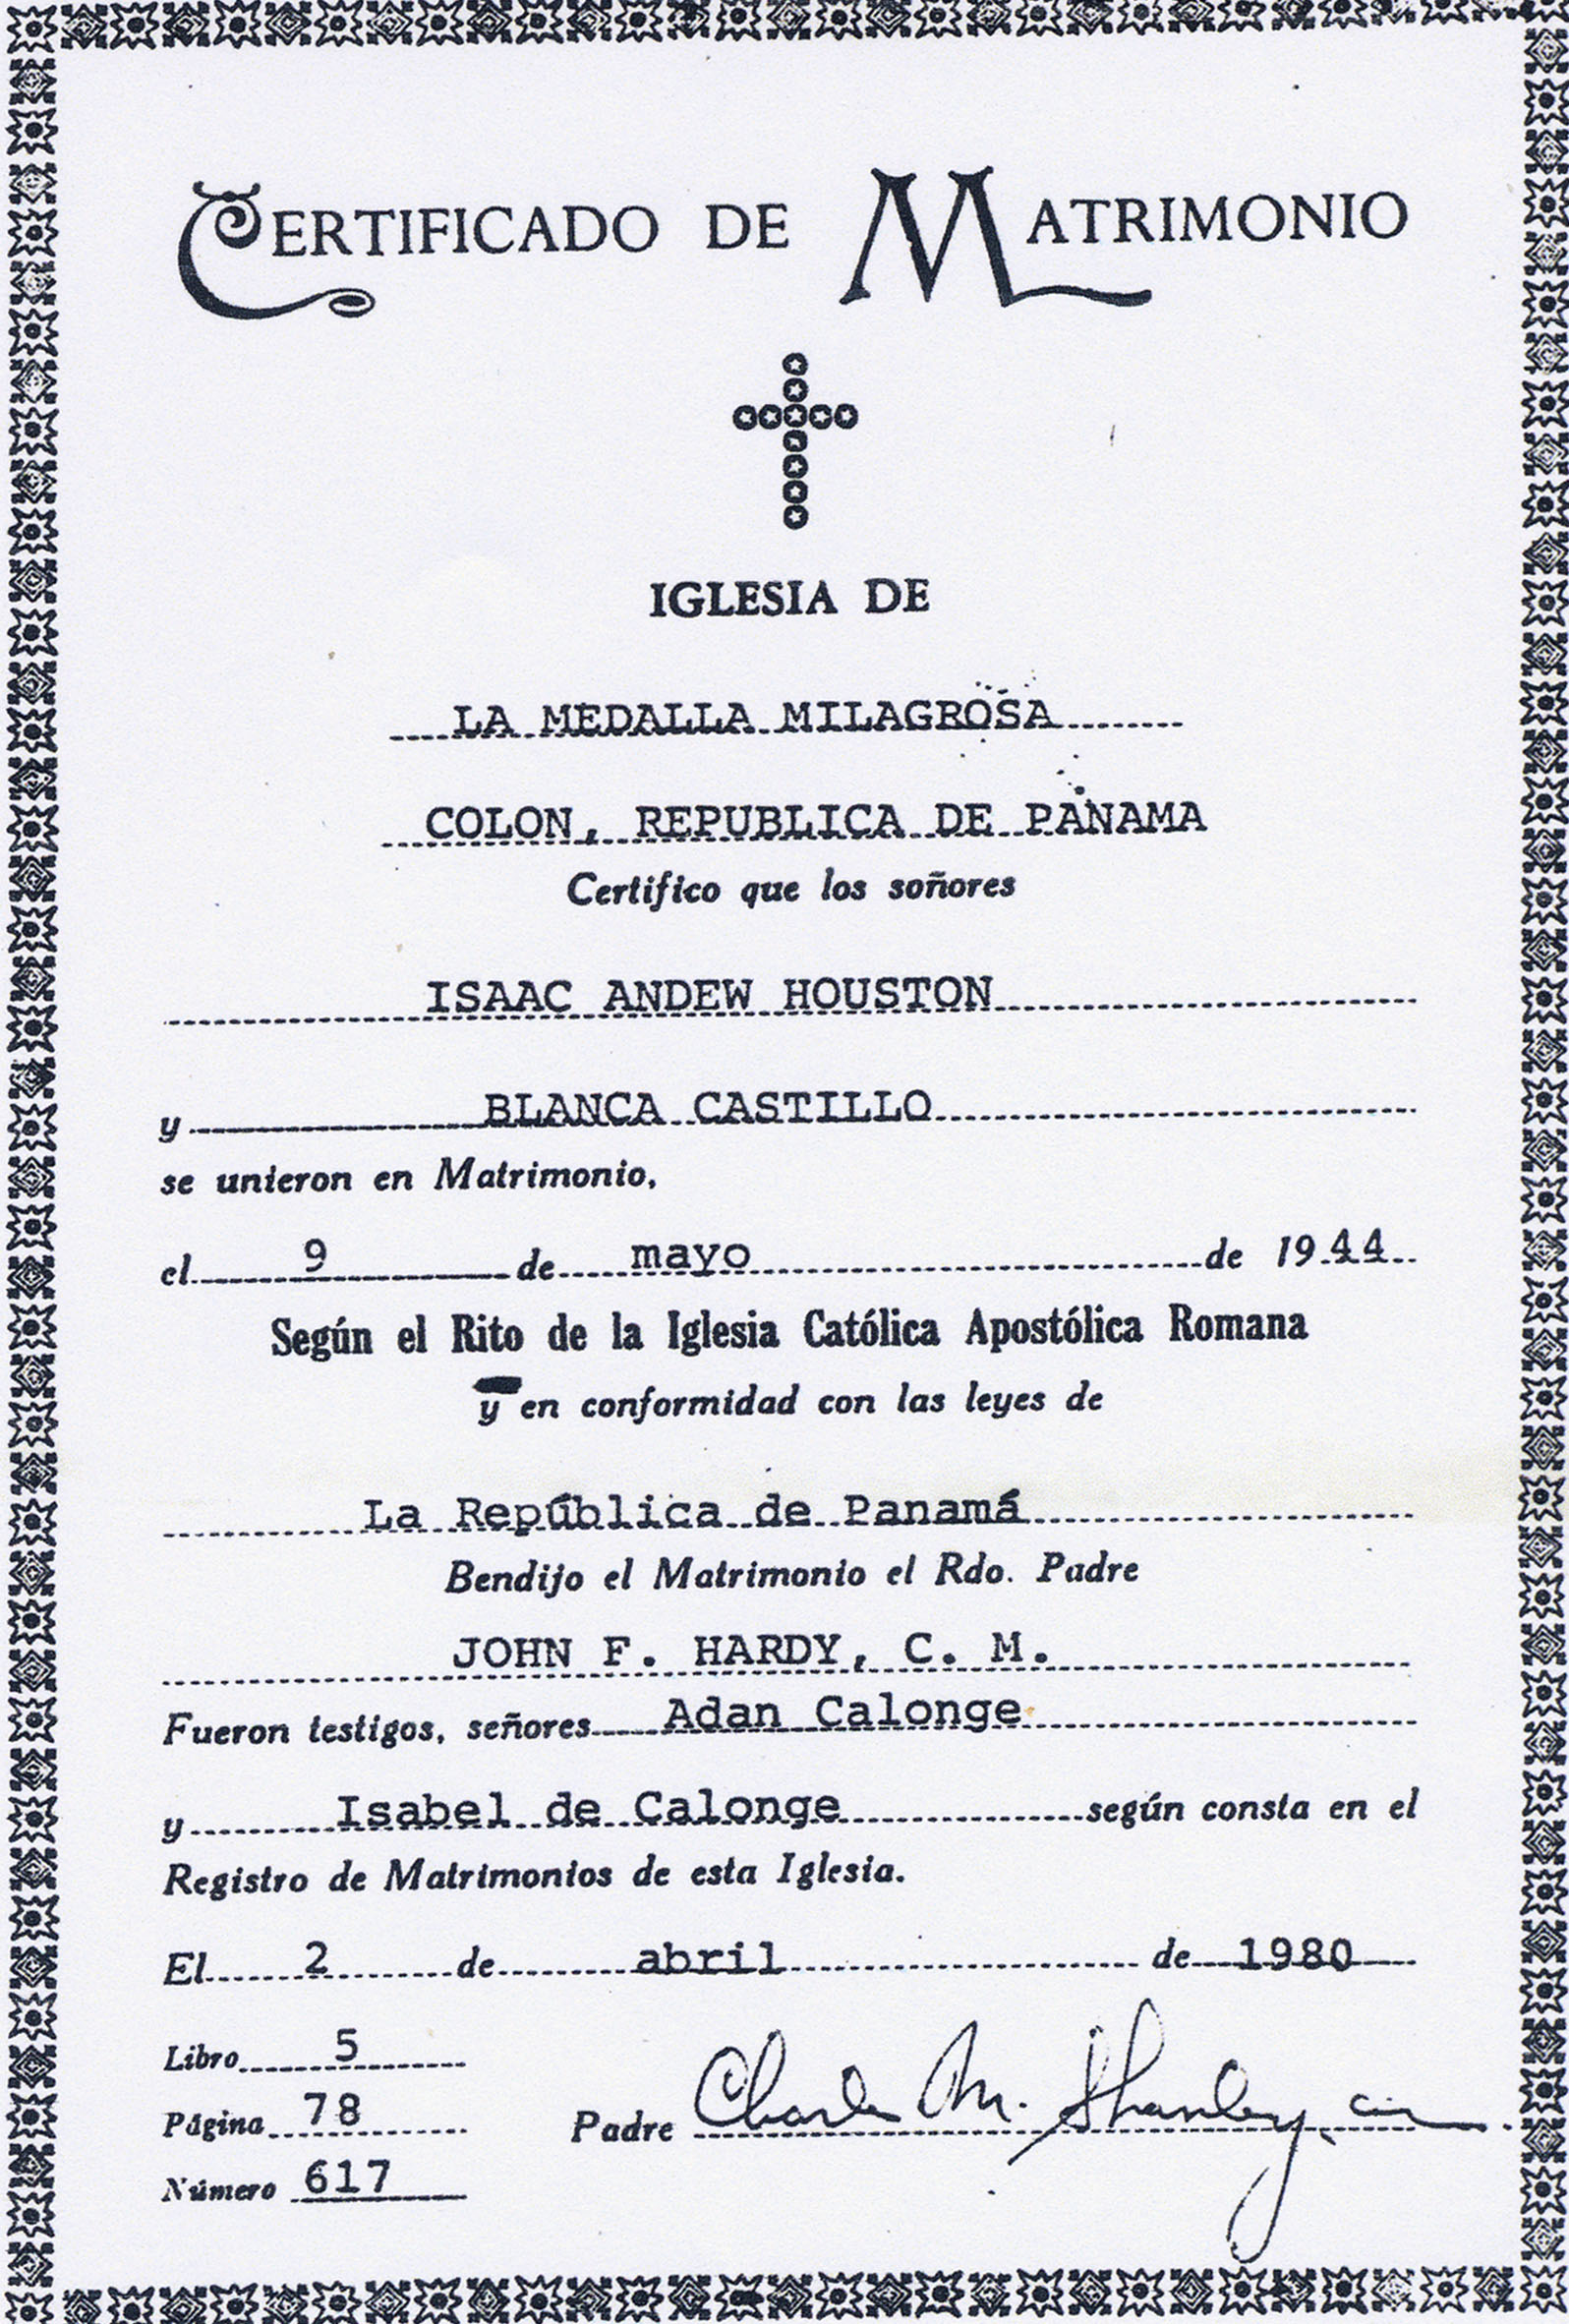 Documents Marriage Certificate For Isaac Andrew Houston And Blanca